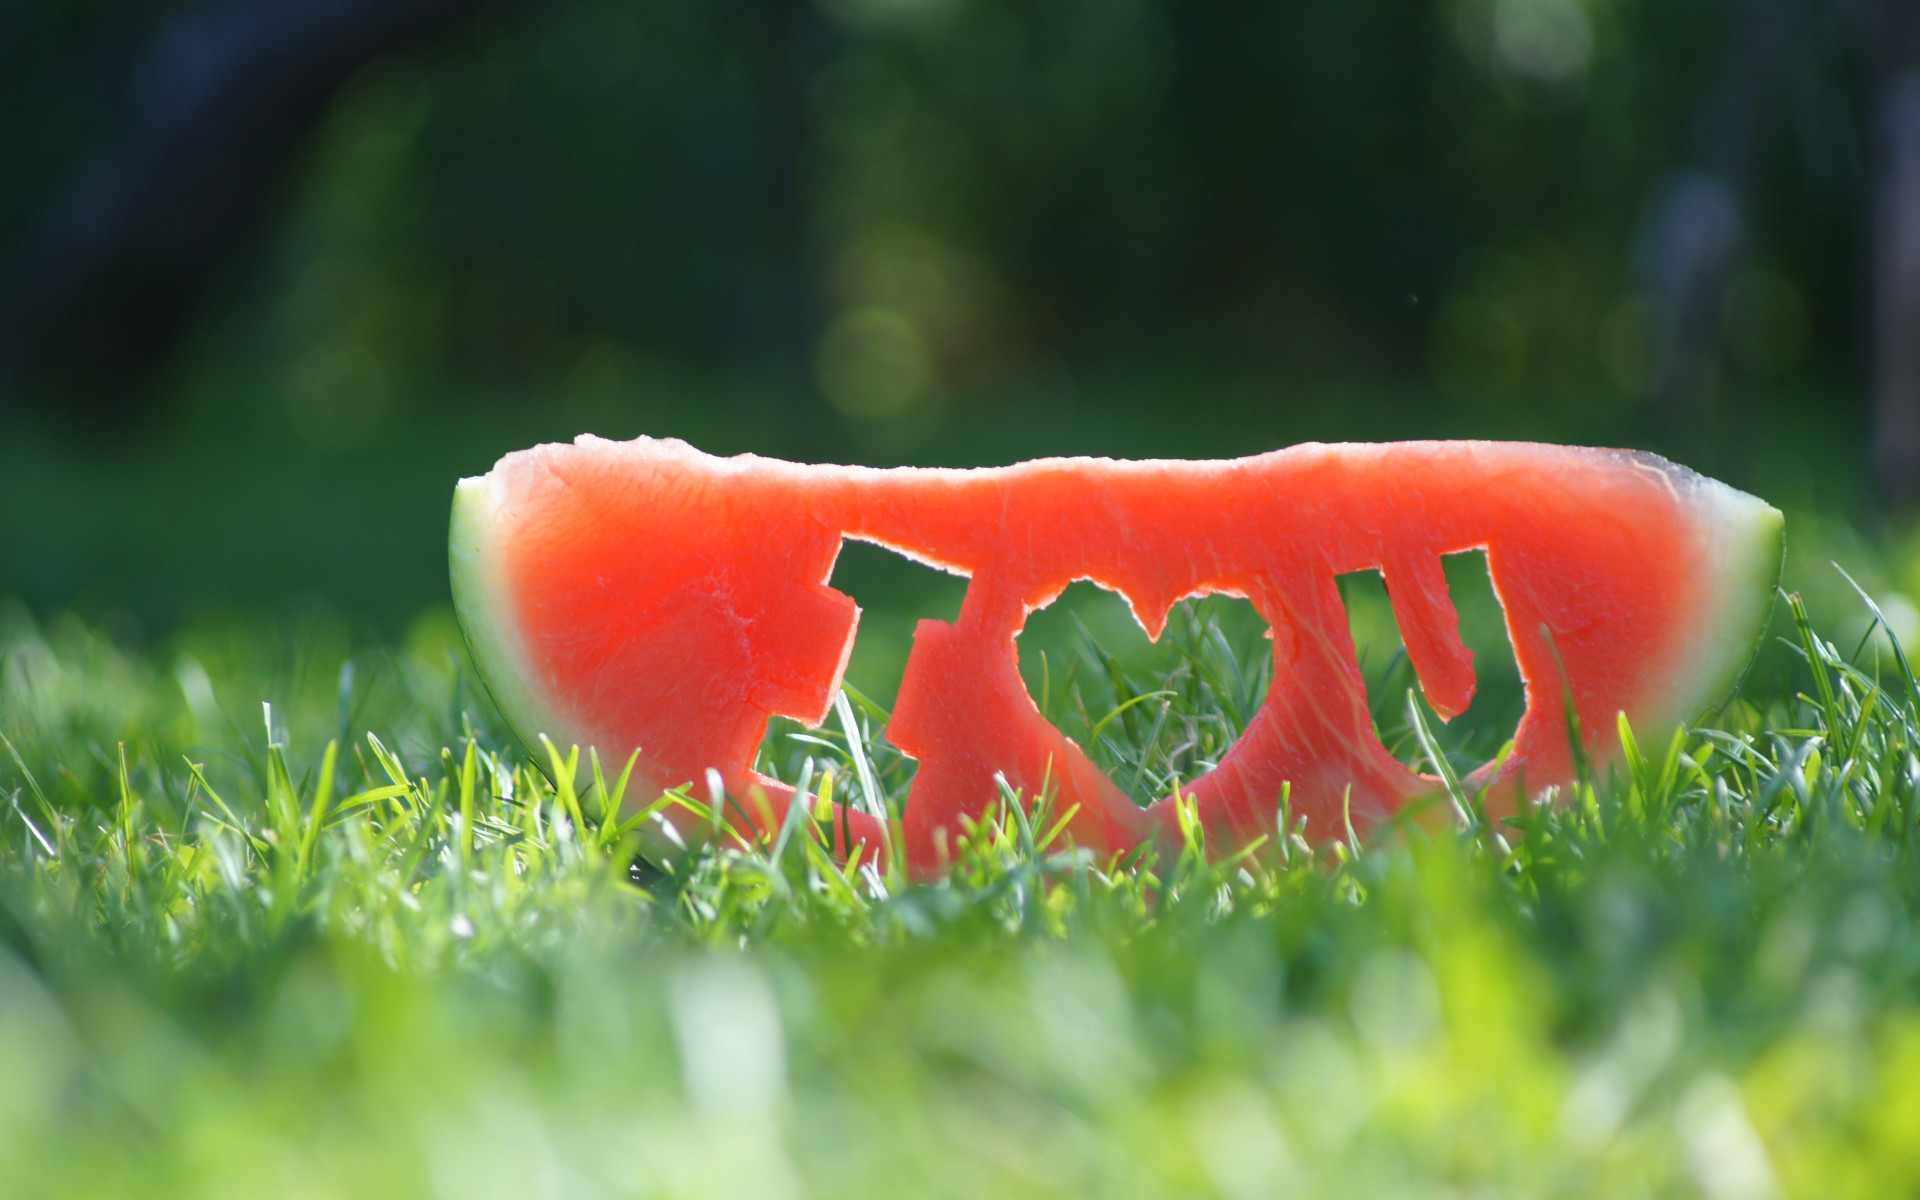 I love you through a watermelon slice wallpaper 1920x1200